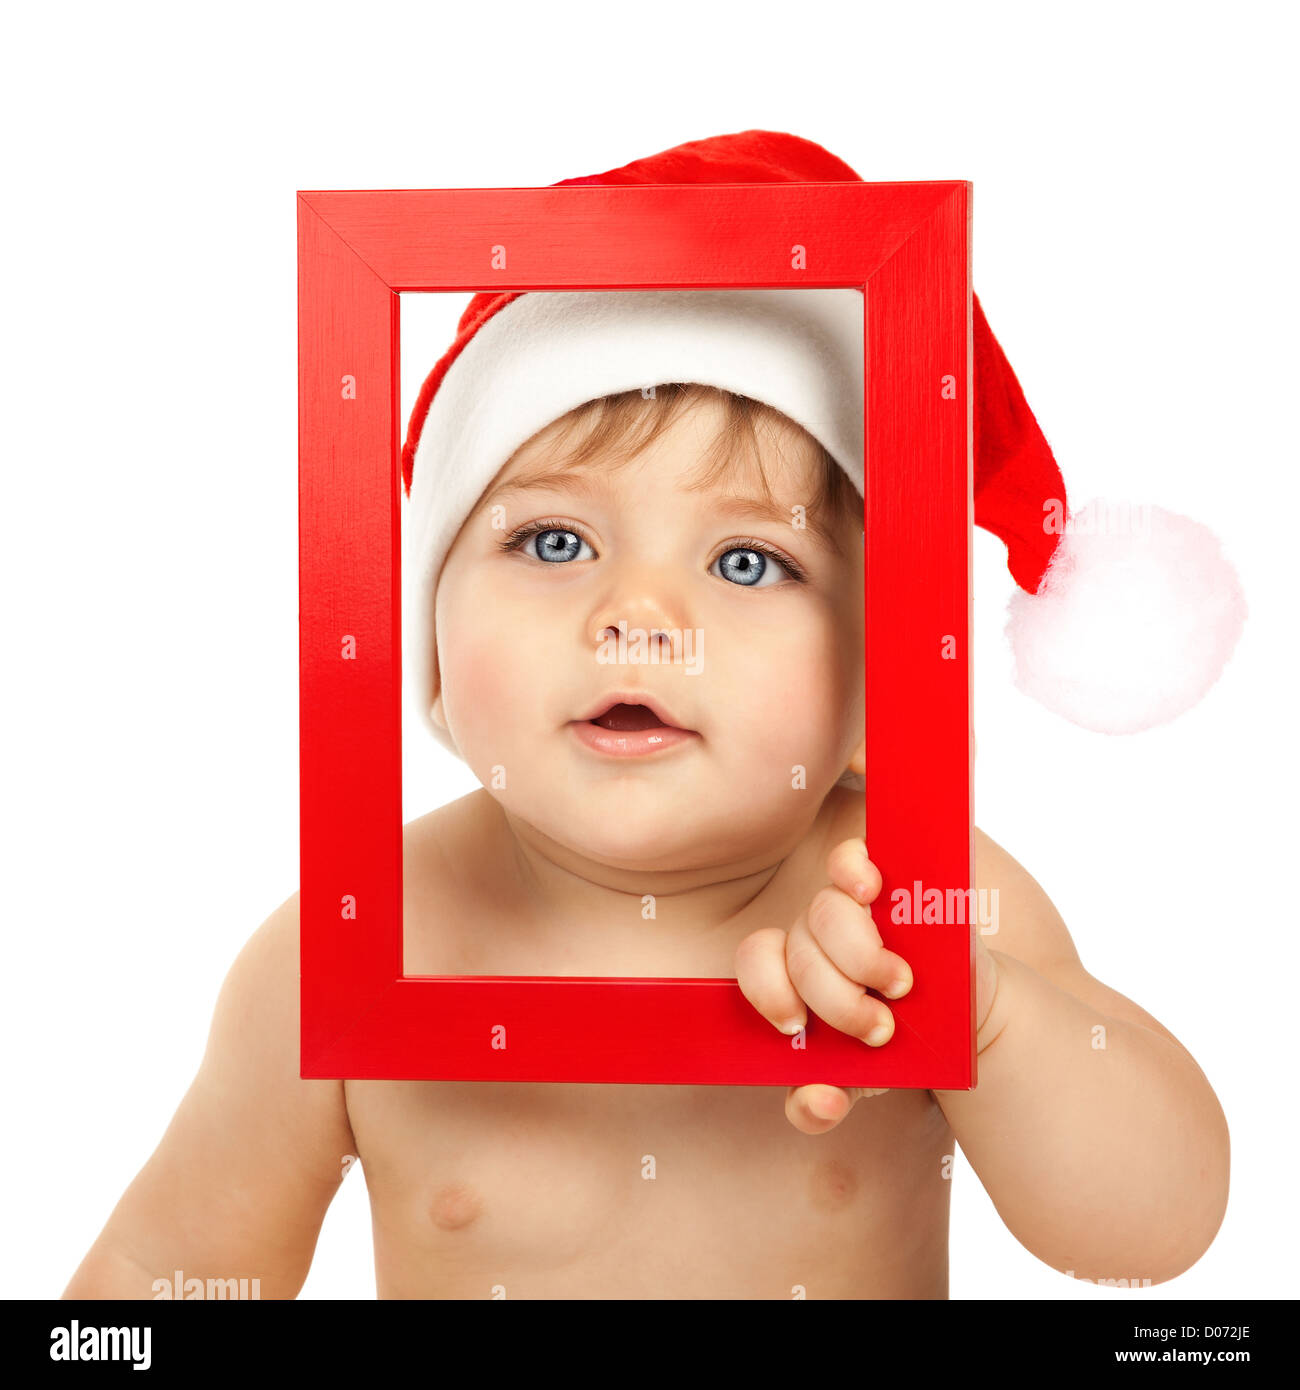 f6d97b39f557 Photo of cute baby boy wearing Santa Claus hat, closeup portrait of curious  infant looking through red Christmas frame isolated